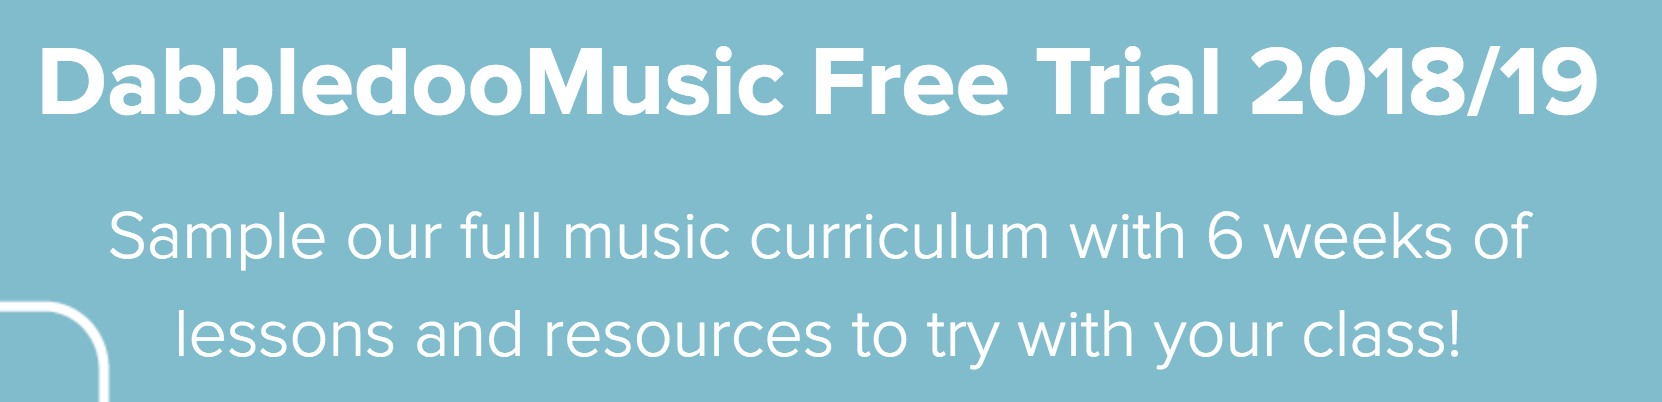 DabbledooMusic Free Trial - Irish Primary Music Curriculum